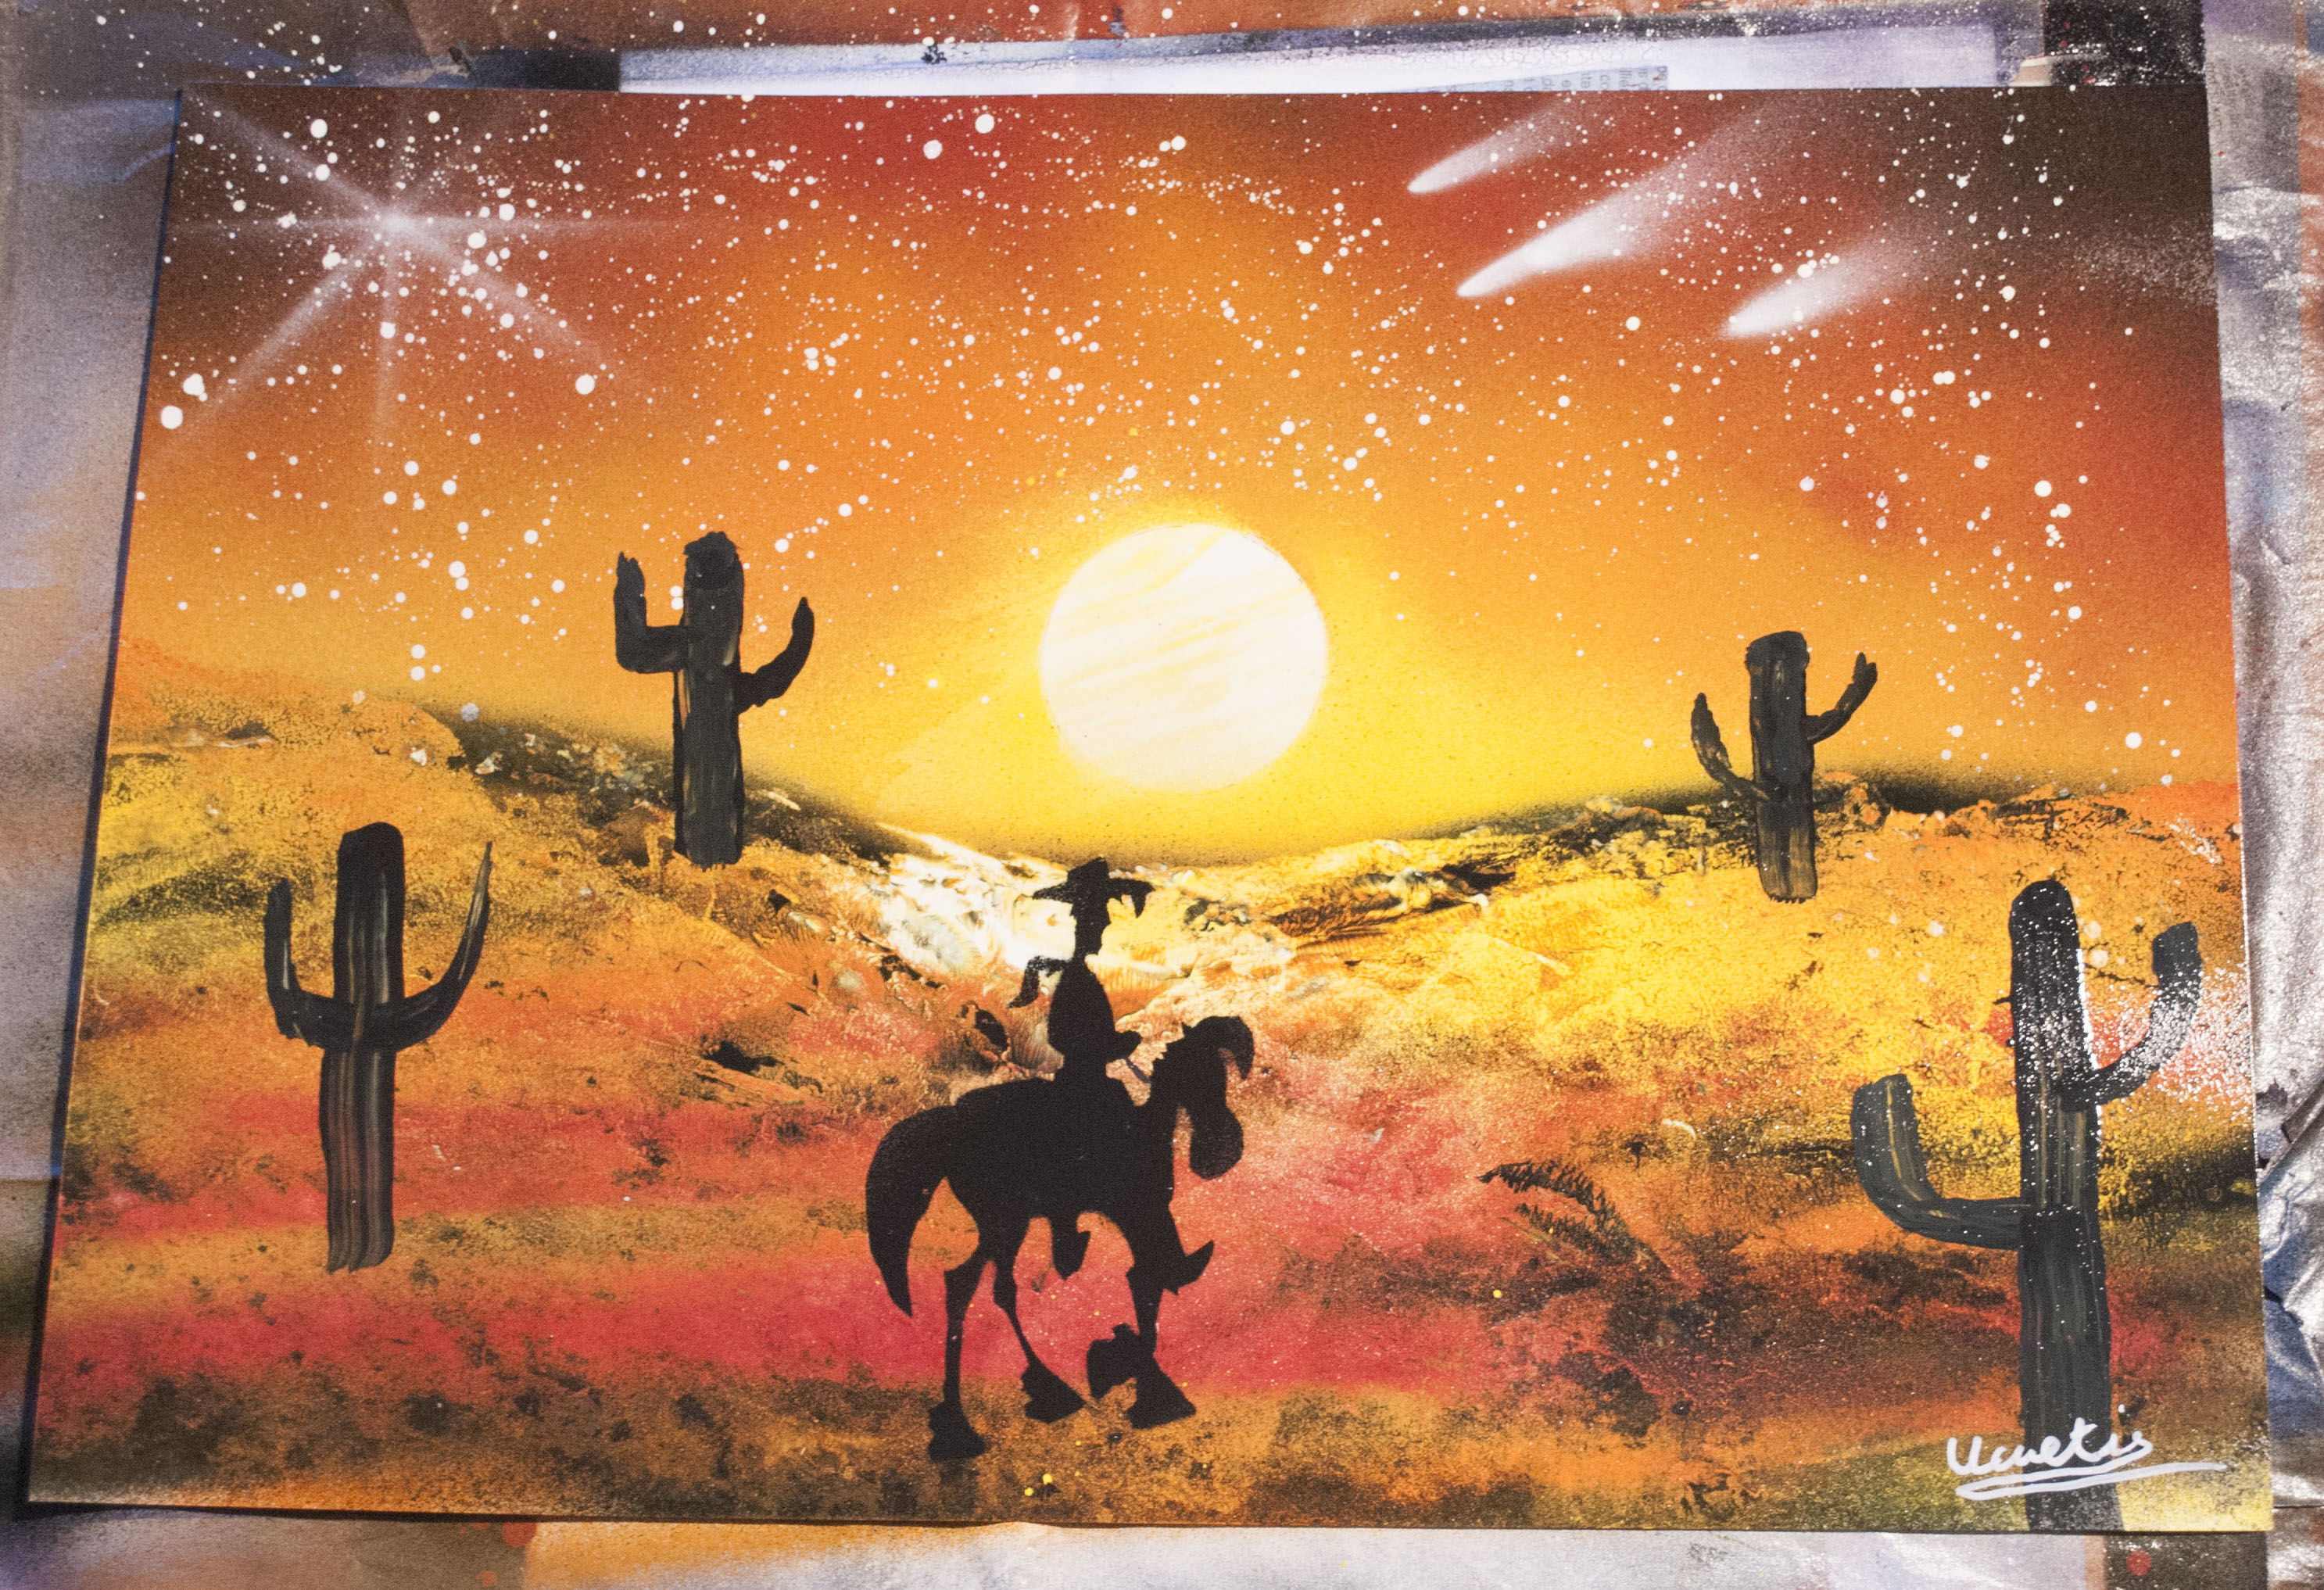 Lucky luke spray paint art by Ucuetis